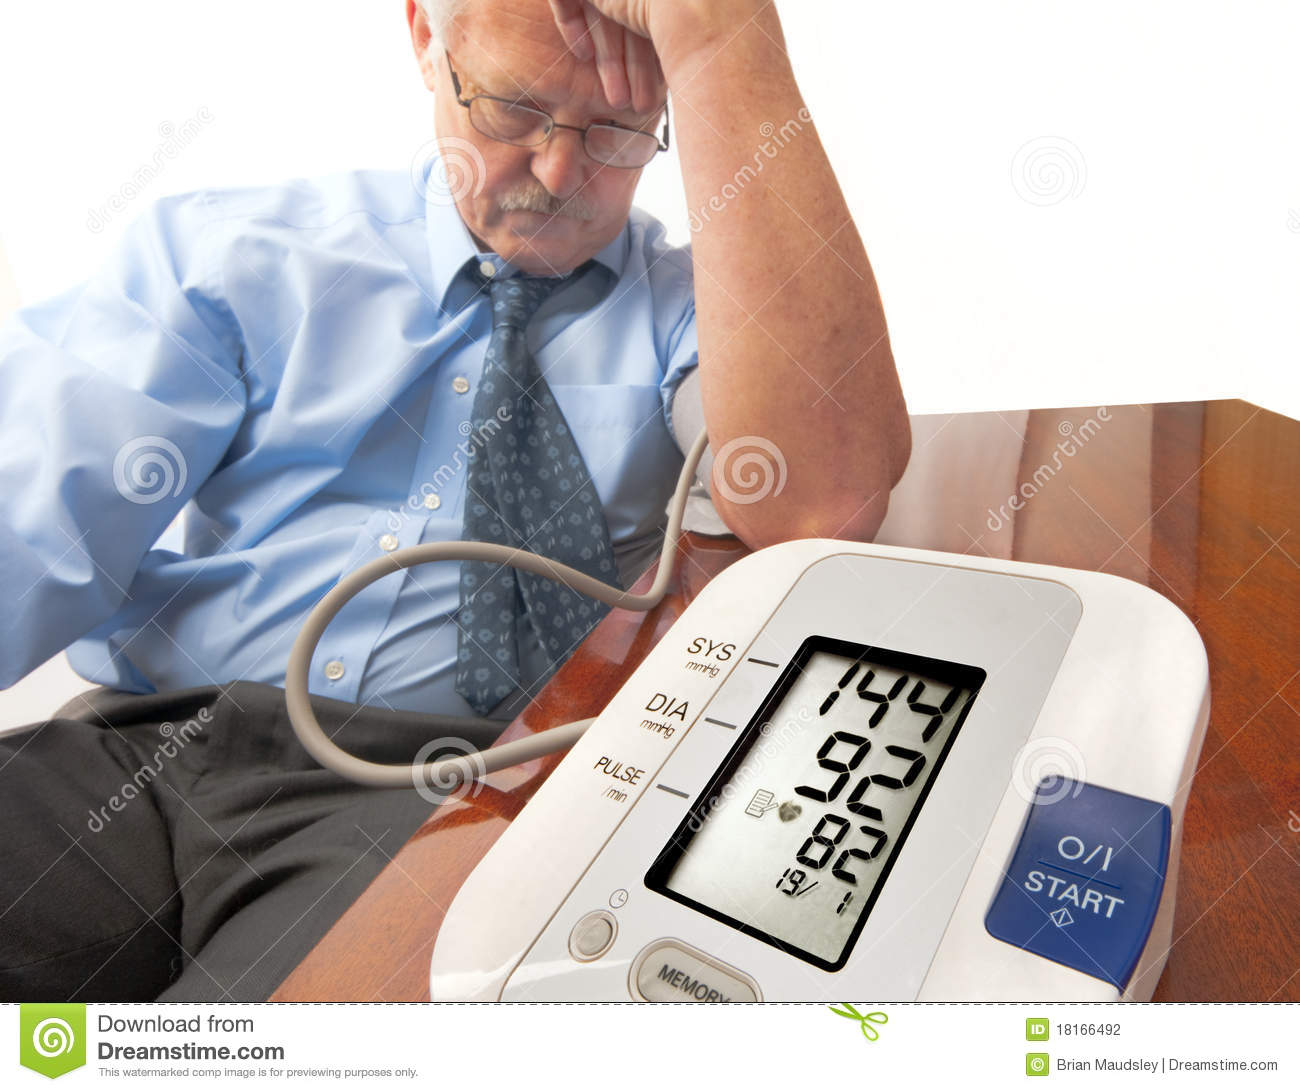 Stress Test Blood Pressure Readings: Worried Senior Man With High Blood Pressure. Stock